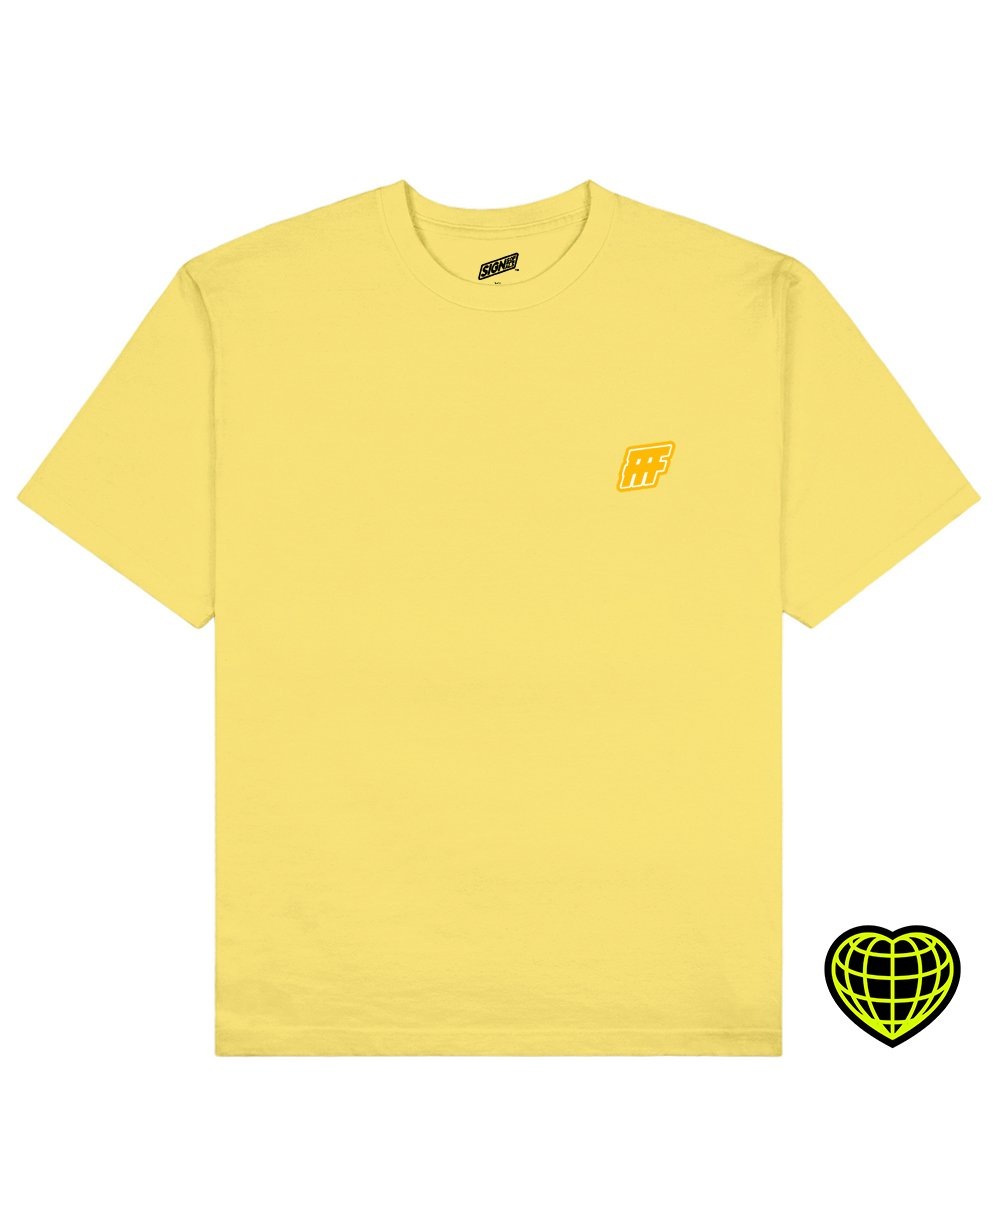 FFF Print T-shirt in Light Yellow - T-Shirts - Signs of Signals - BRANMA